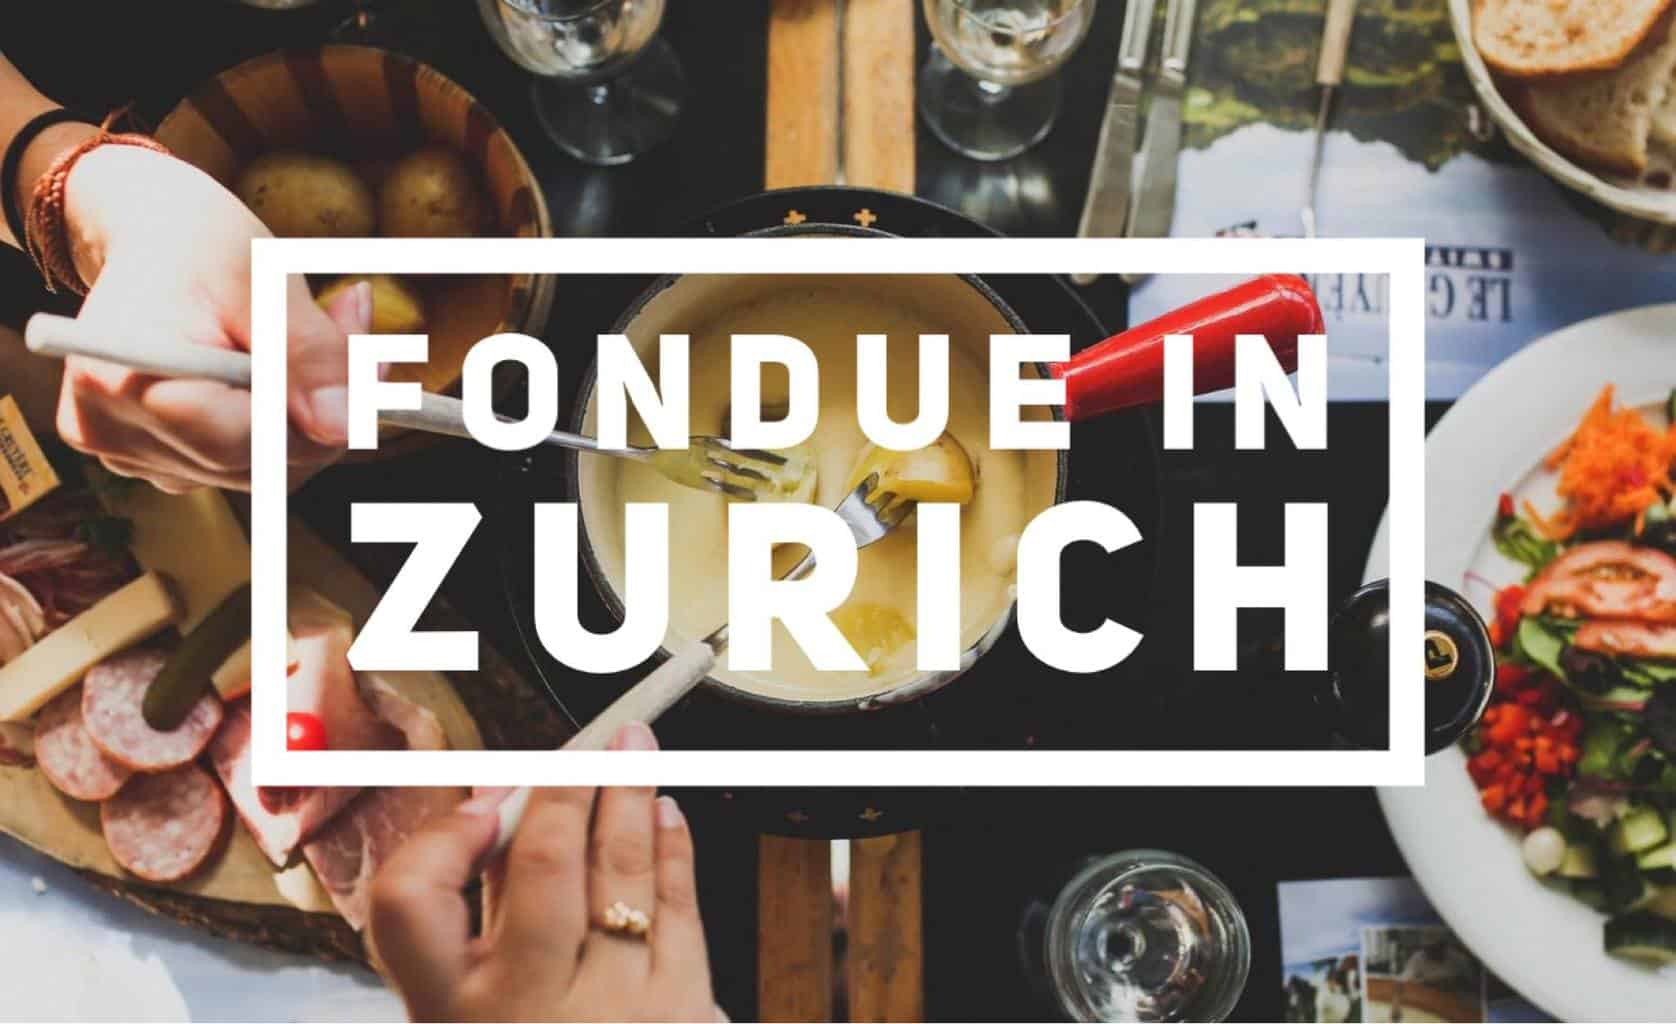 Where to find Fondue in Zurich